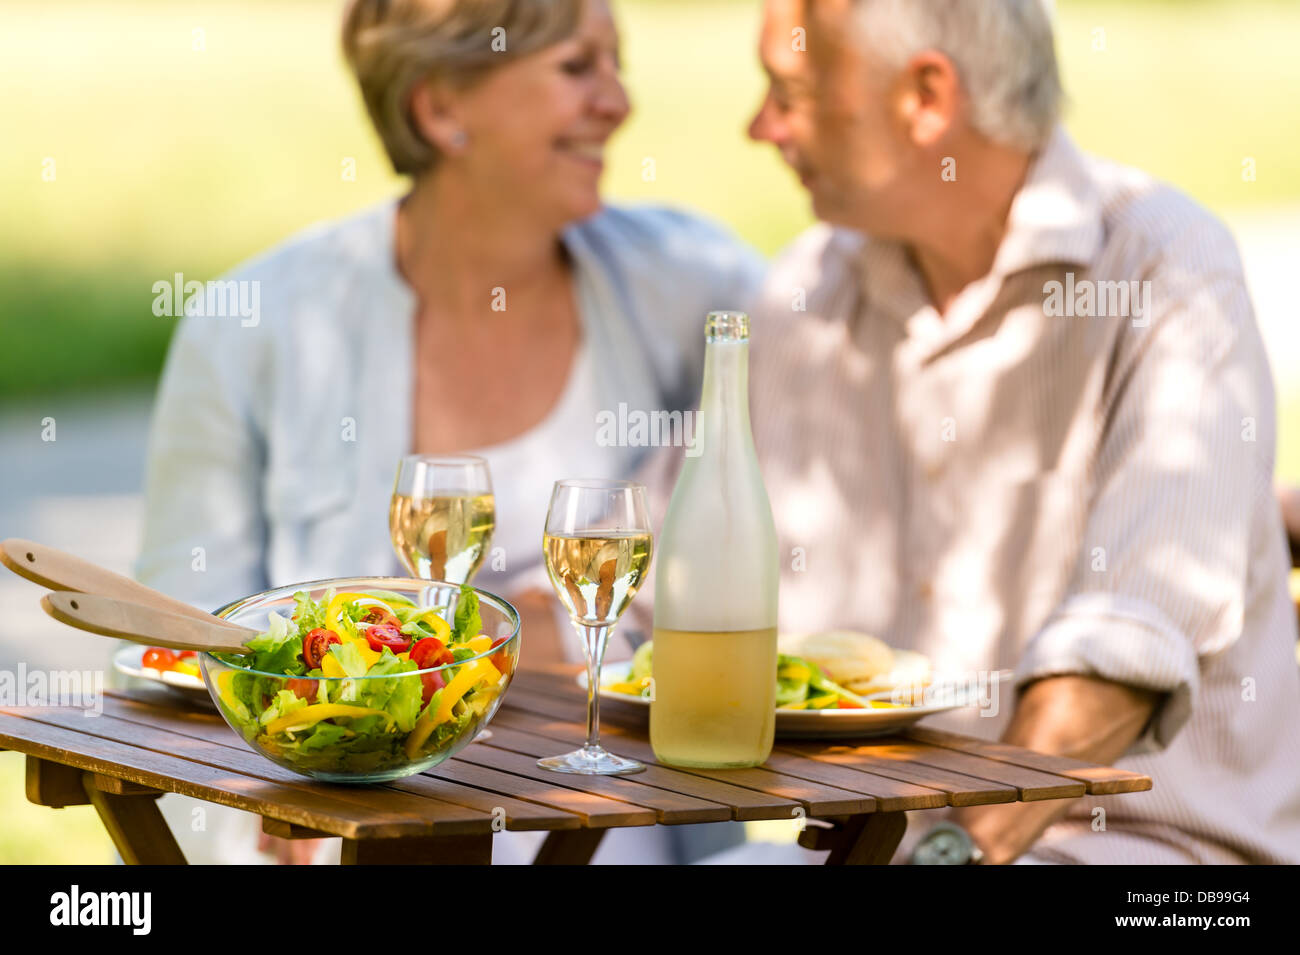 comer senior personals Senior singles know seniorpeoplemeetcom is the premier online dating destination for senior dating browse mature and single senior women and senior men for free, and find your soul mate today.